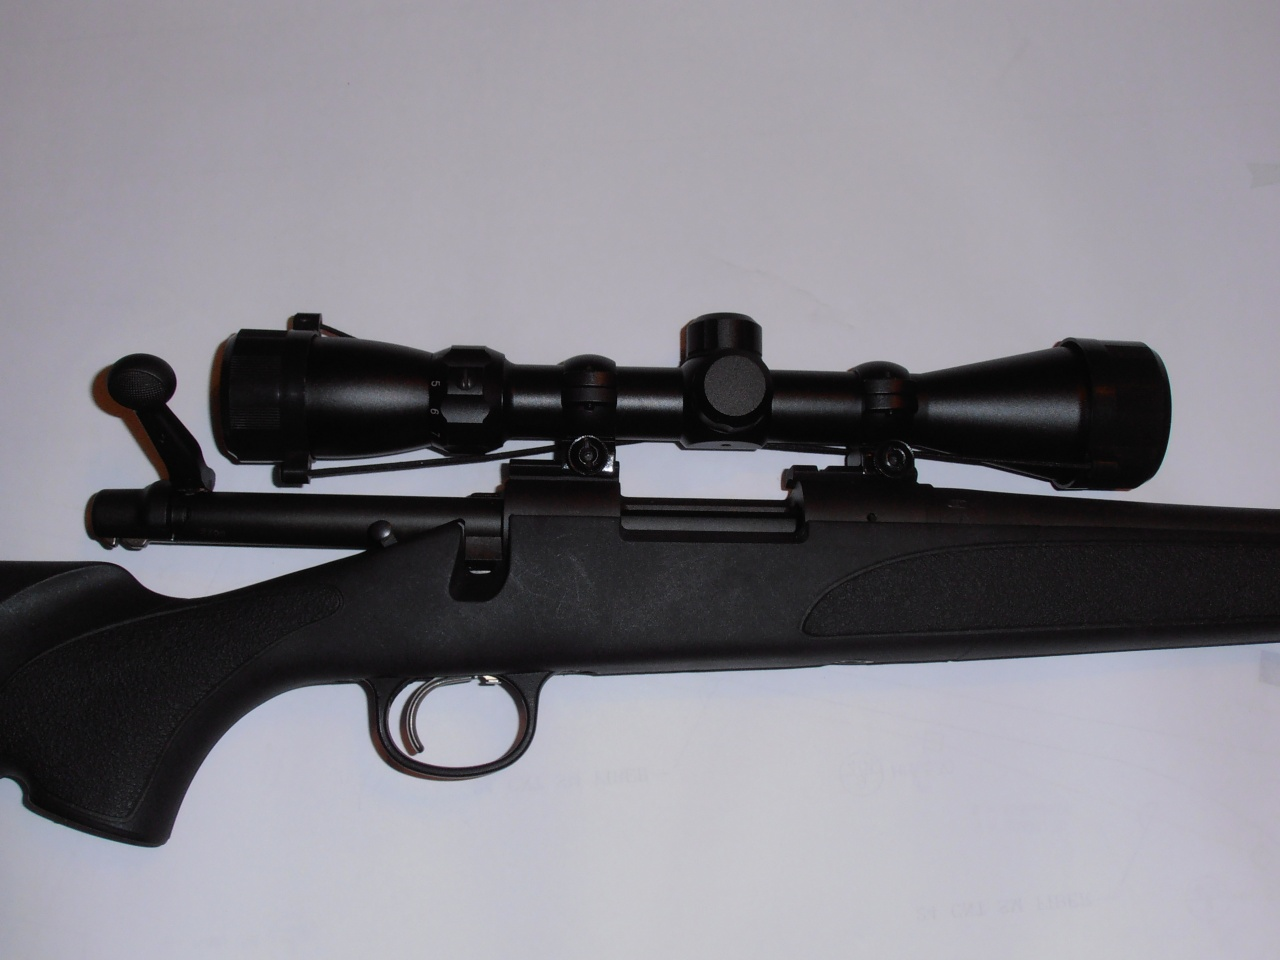 Remington 700 Youth 243 for sale-remington-700-youth-243-2-jpg